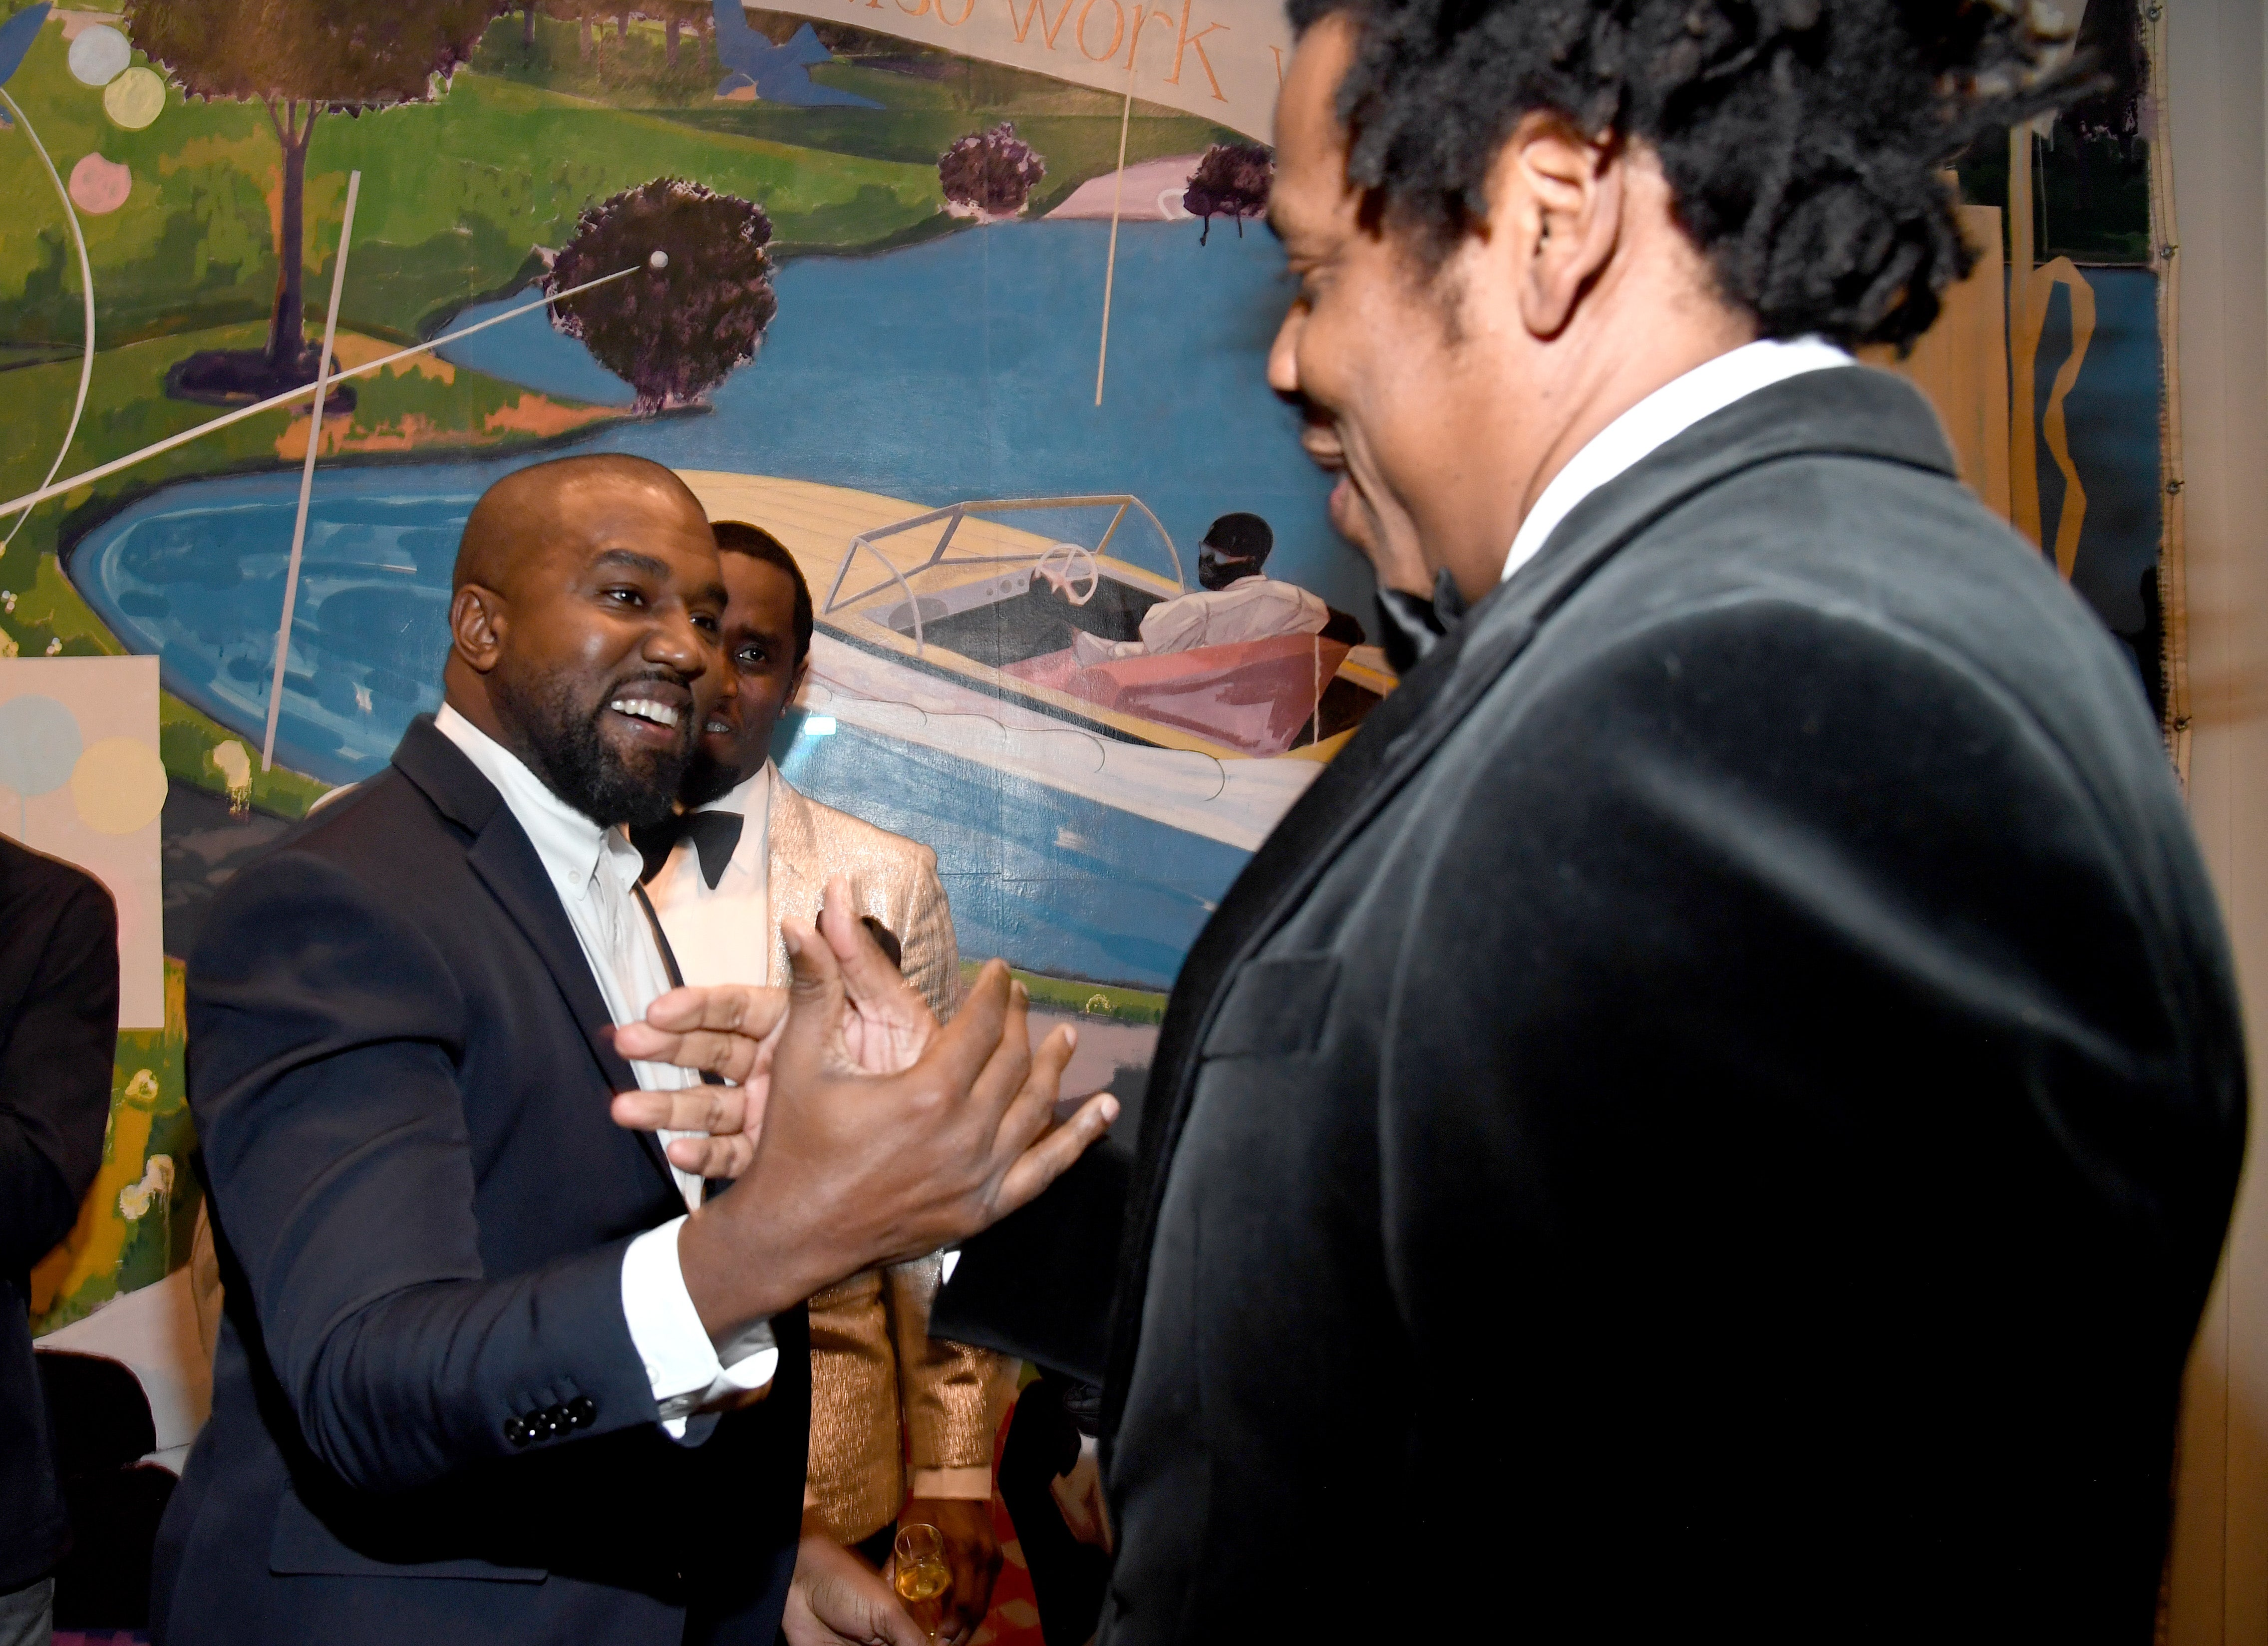 Kim Kardashian and Kanye West Reunite With Beyonce and JAY-Z at Sean 'Diddy' Combs' 50th Birthday Party